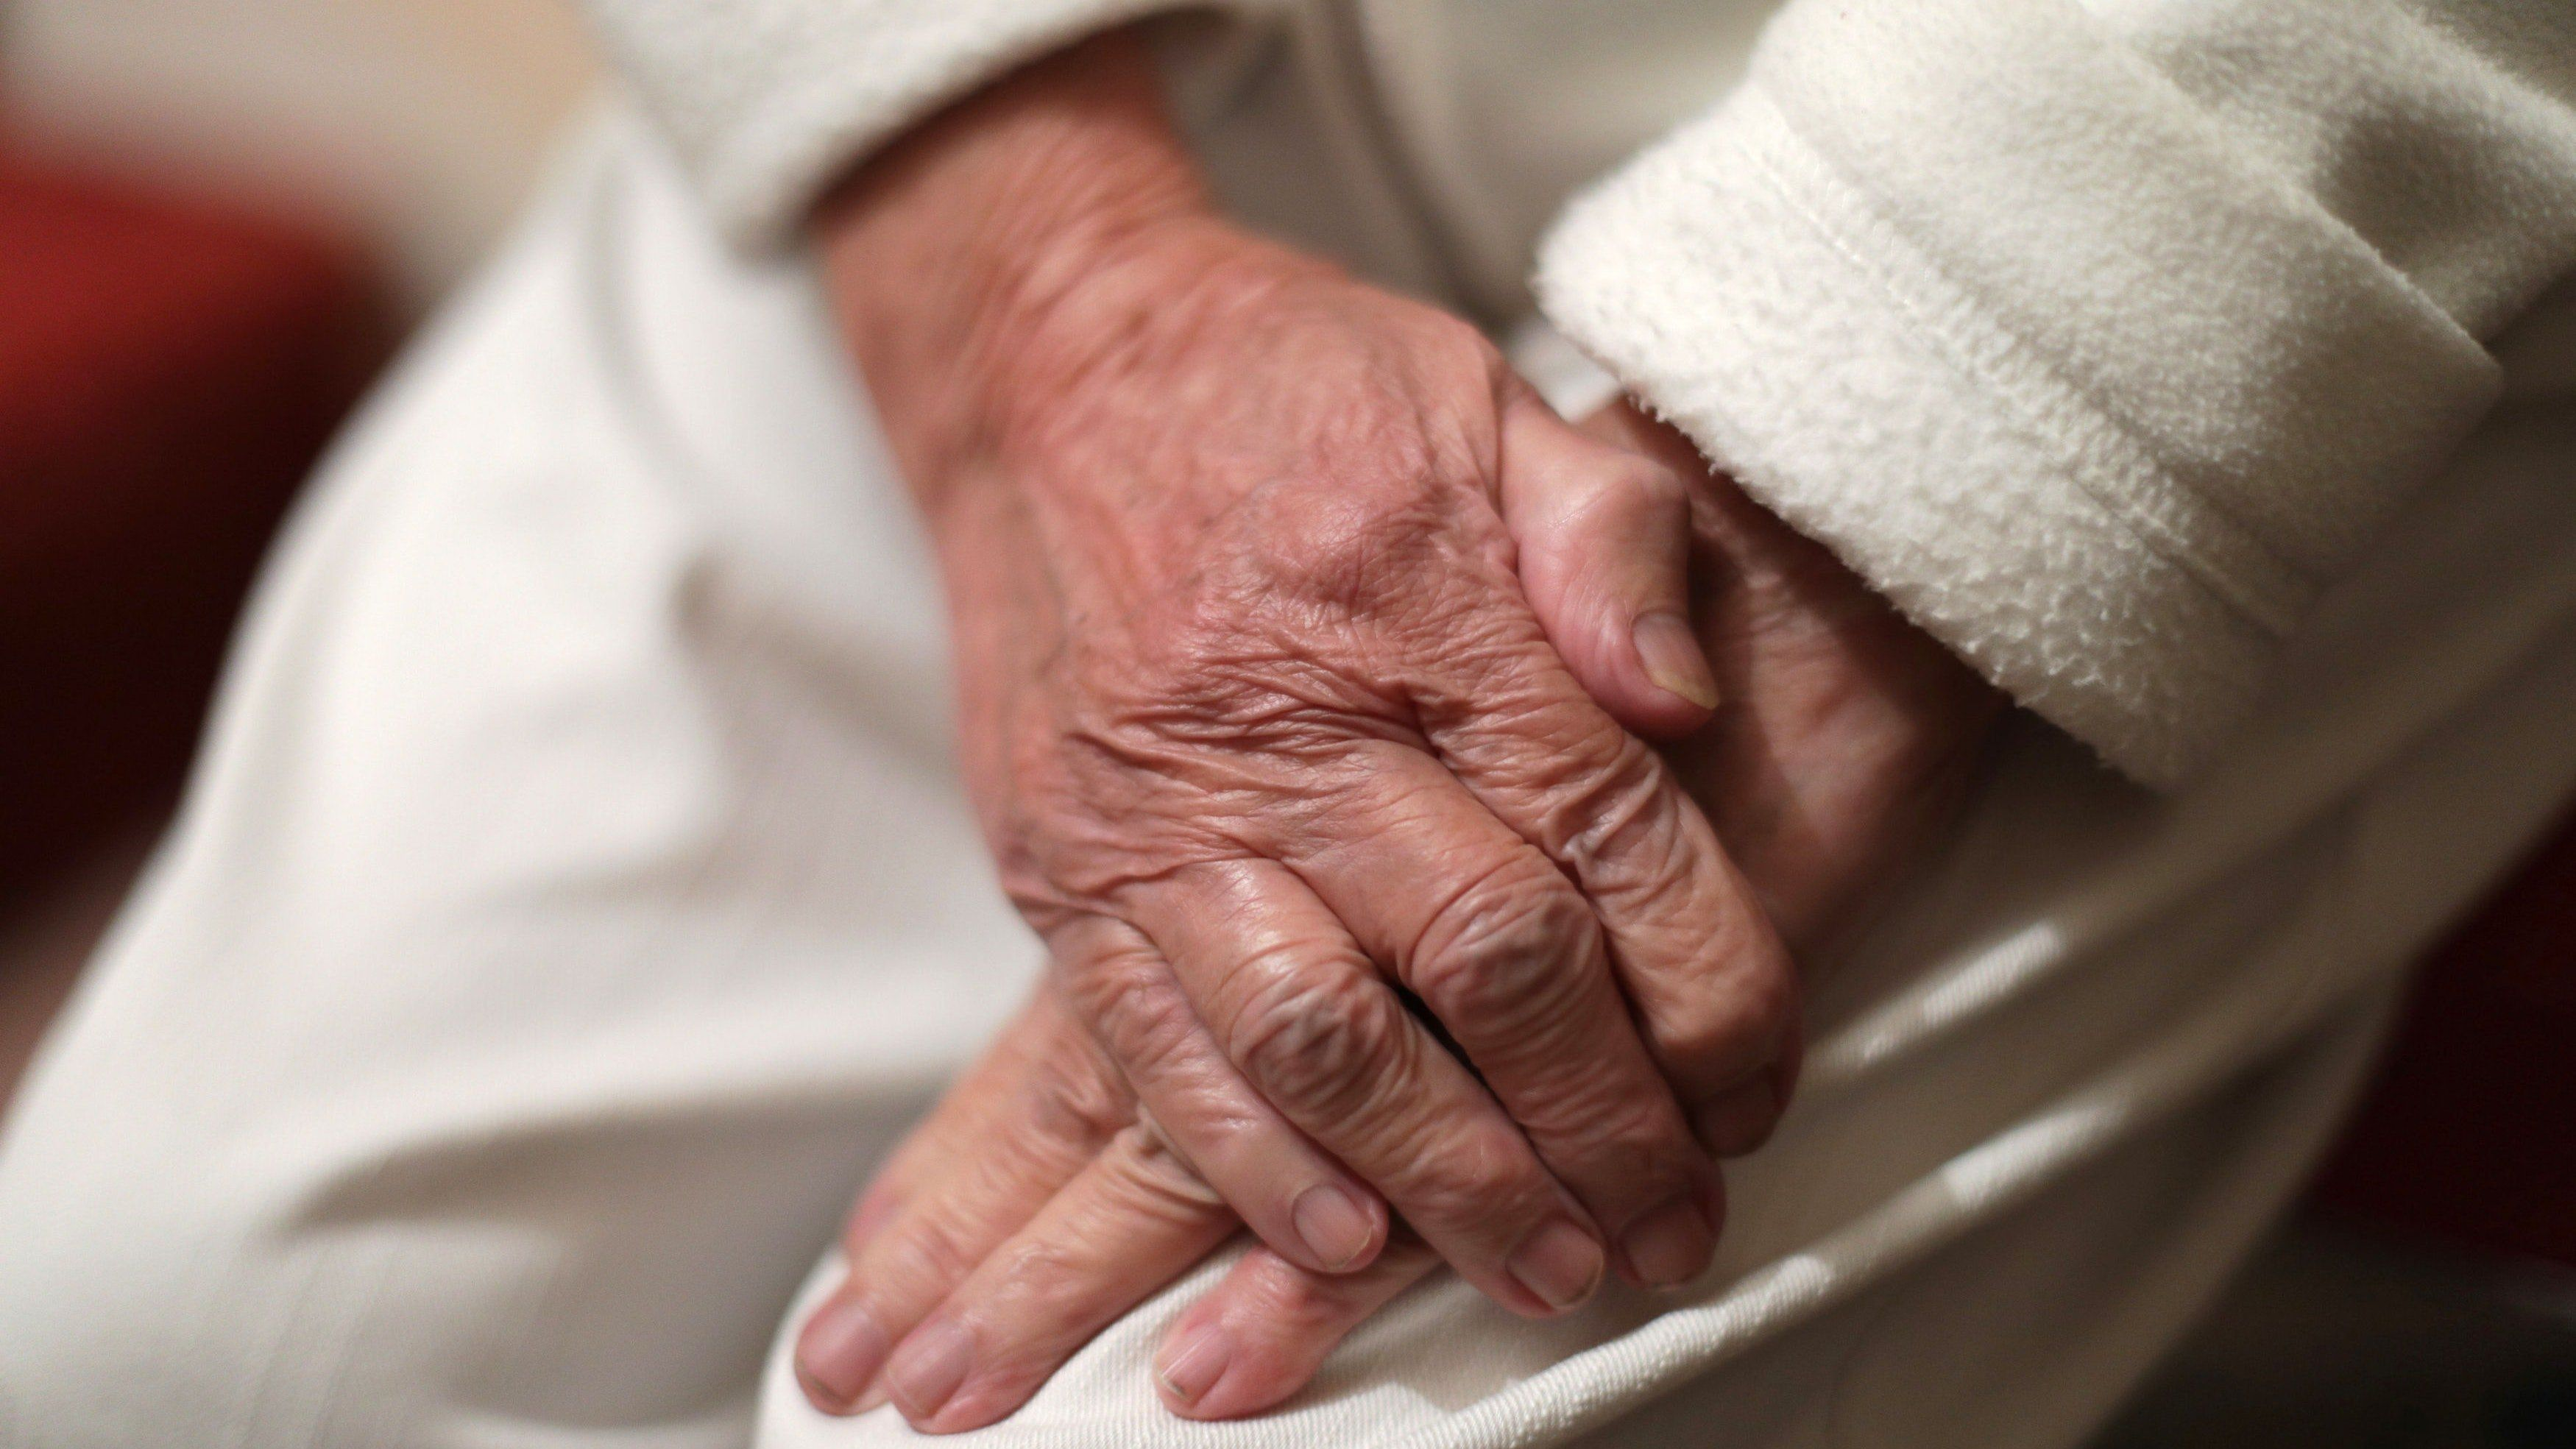 Government Launches Recruitment Campaign To Fill 110,000 Social Care